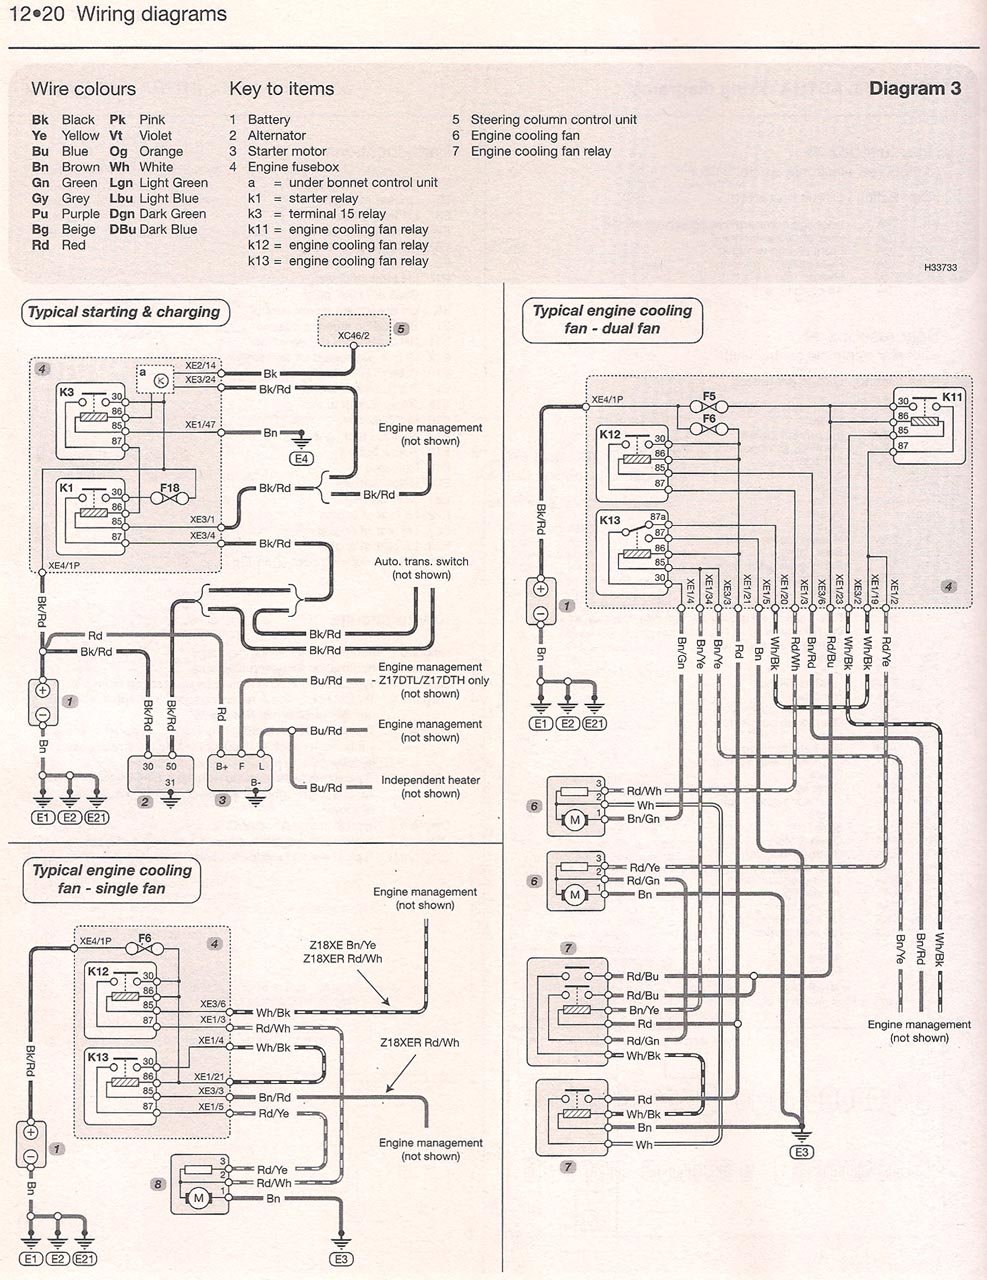 Vauxhall astra wiring diagram pdf wiring diagram vauxhall vivaro wiring diagram wiring source u2022 95 jeep wiring diagram vauxhall astra wiring diagram pdf asfbconference2016 Images